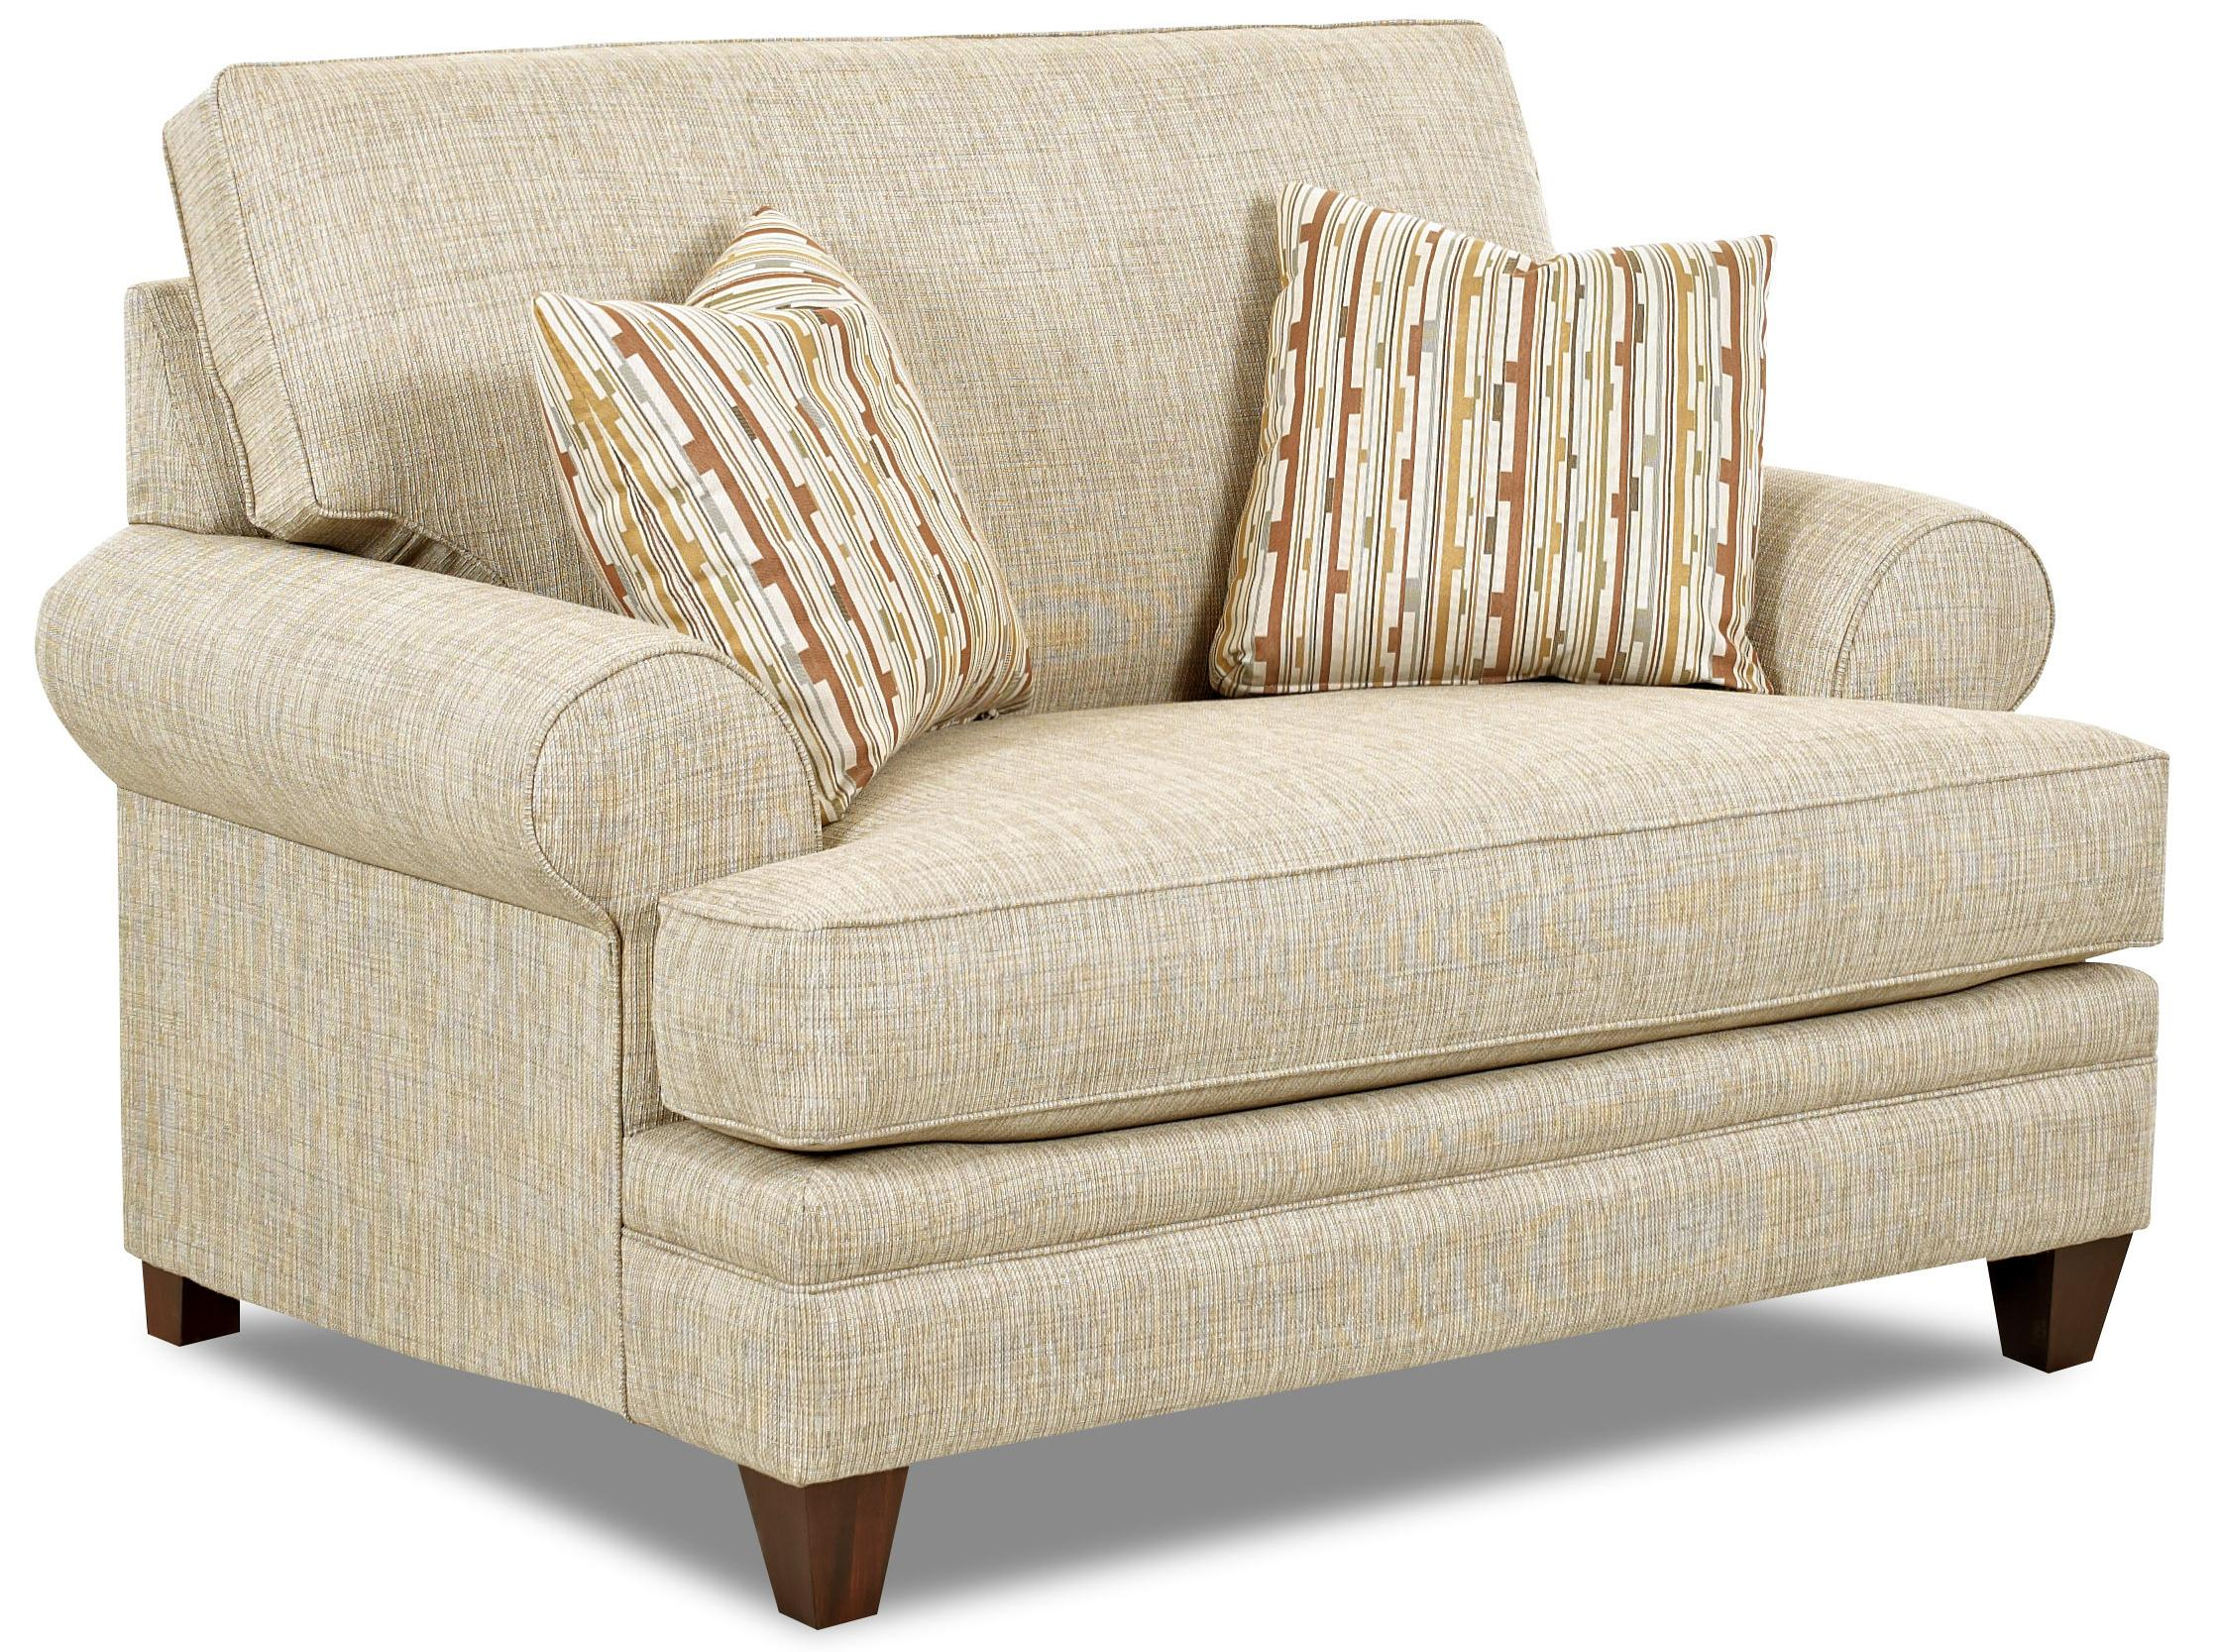 ... Oversized Chair with Accent Pillows - Stegers Furniture - Chair & a